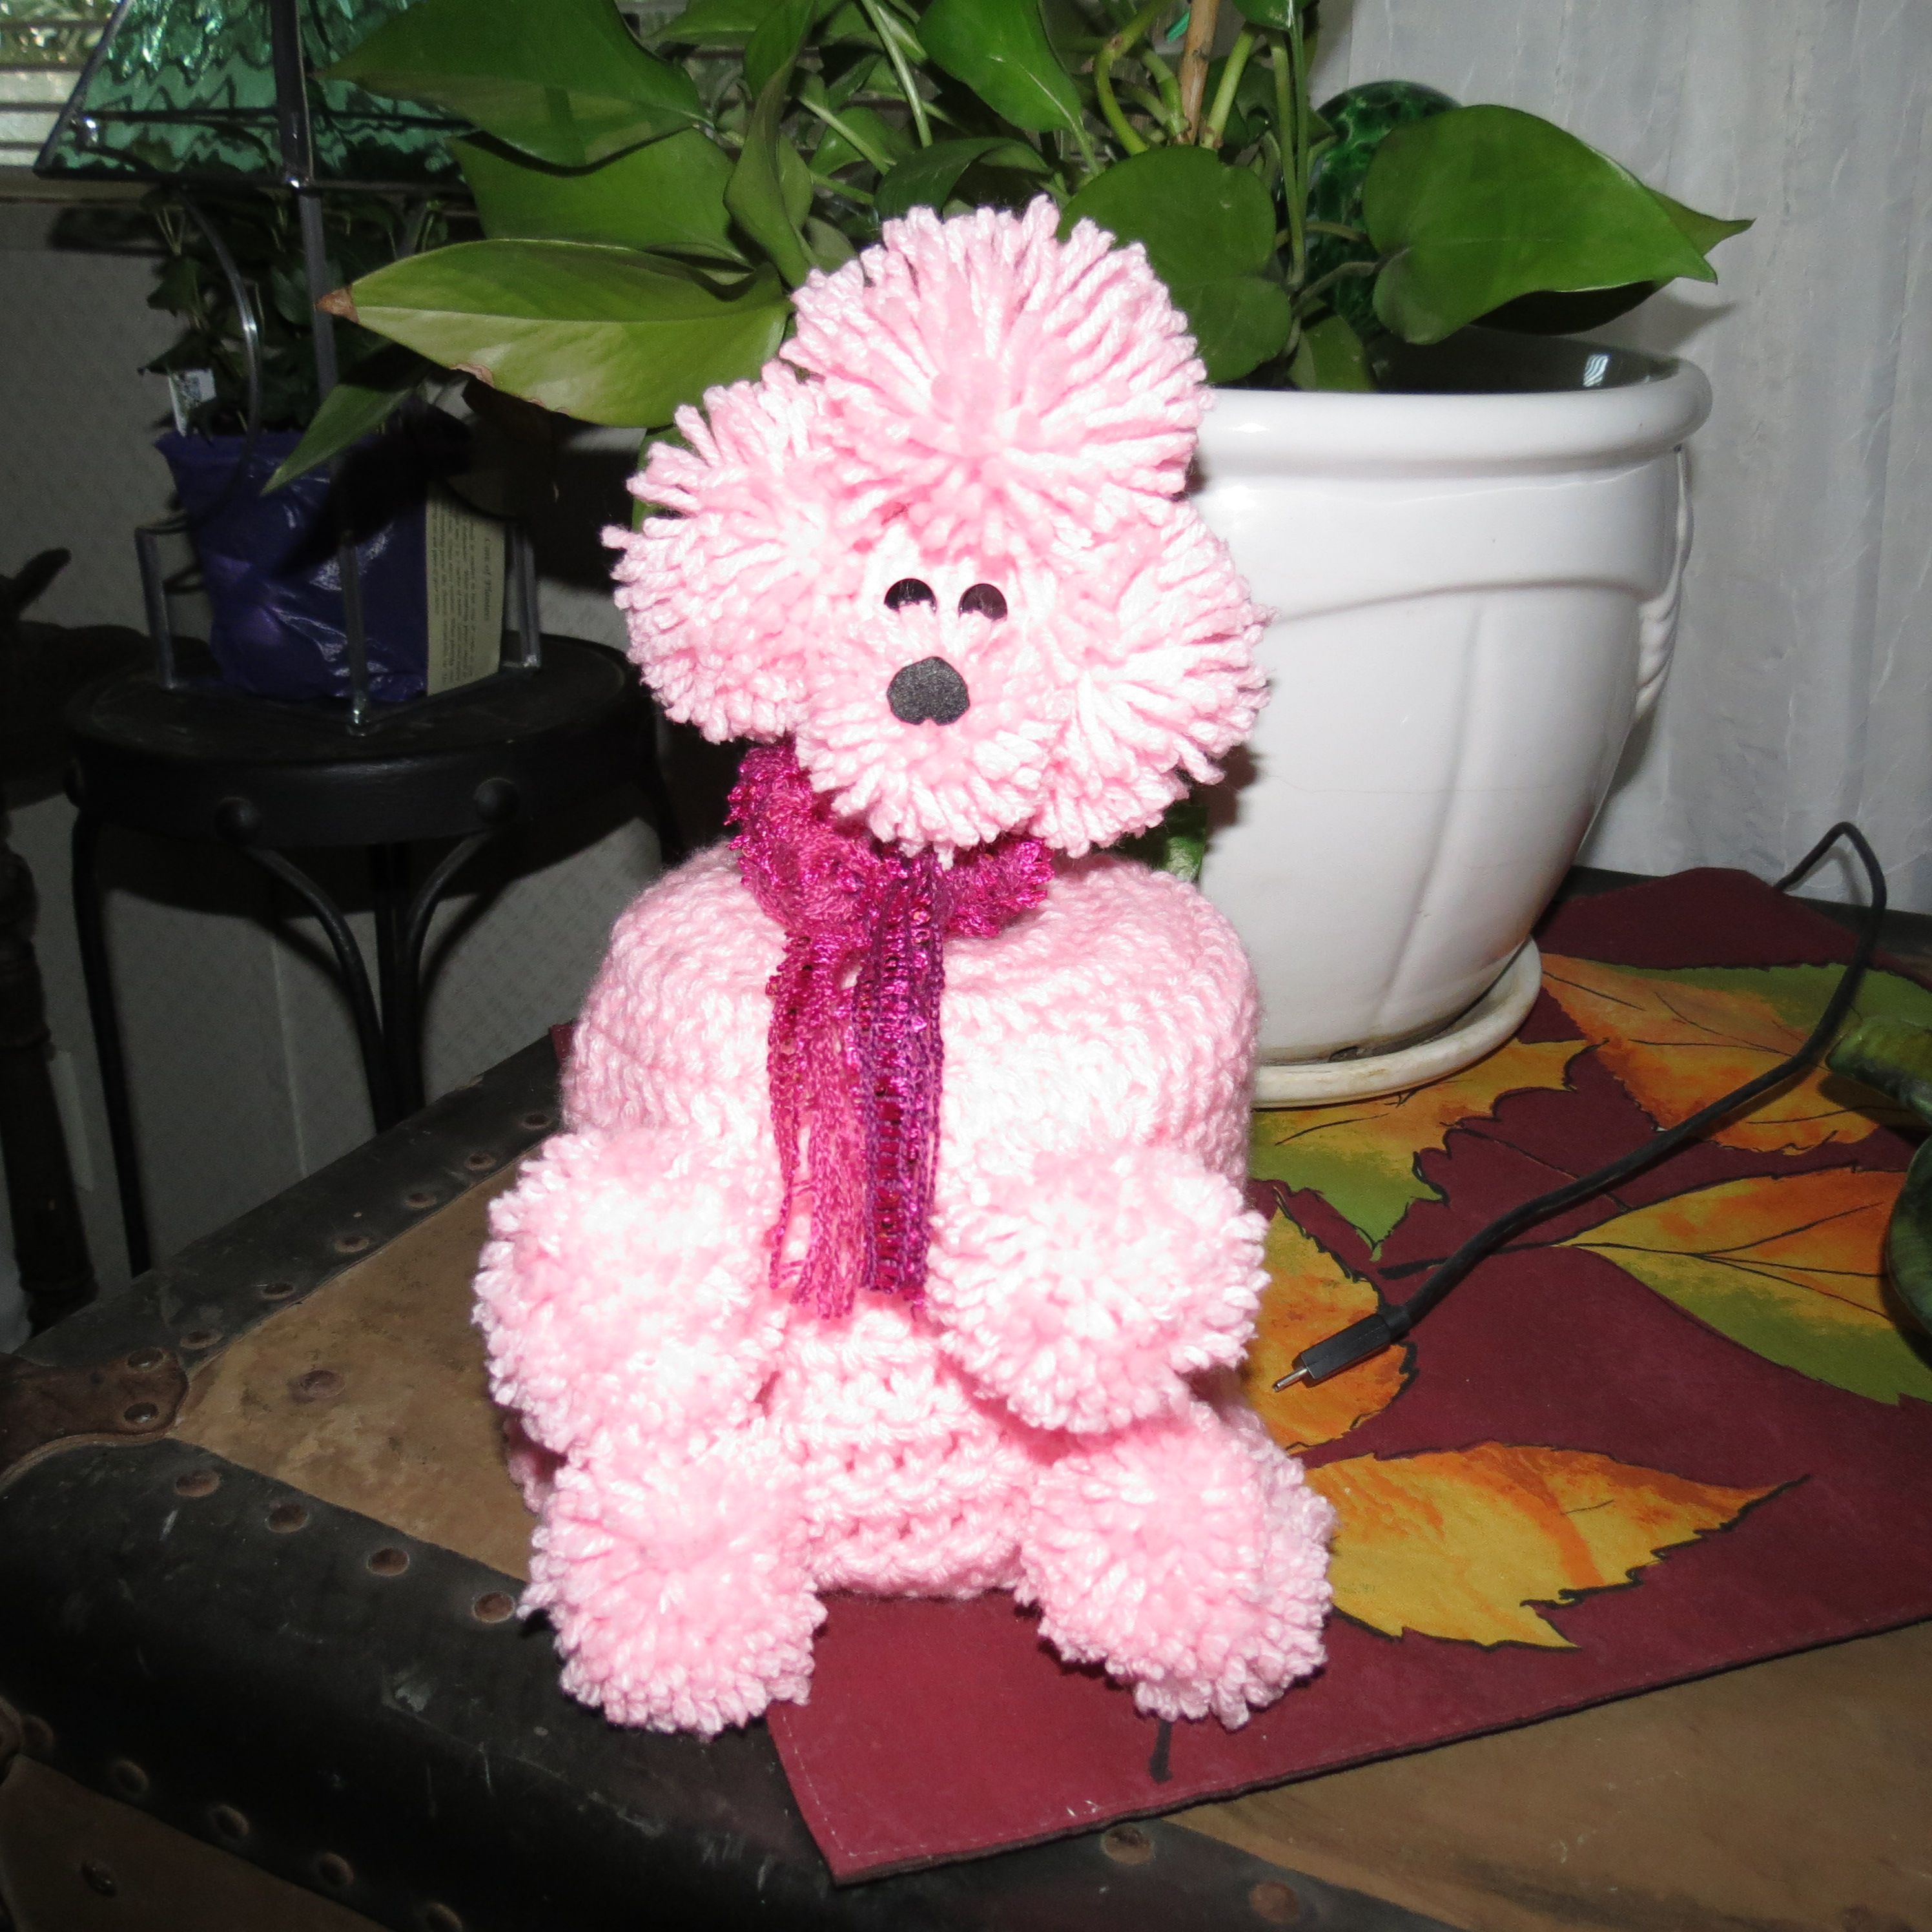 Poodle toilet tissue cover.